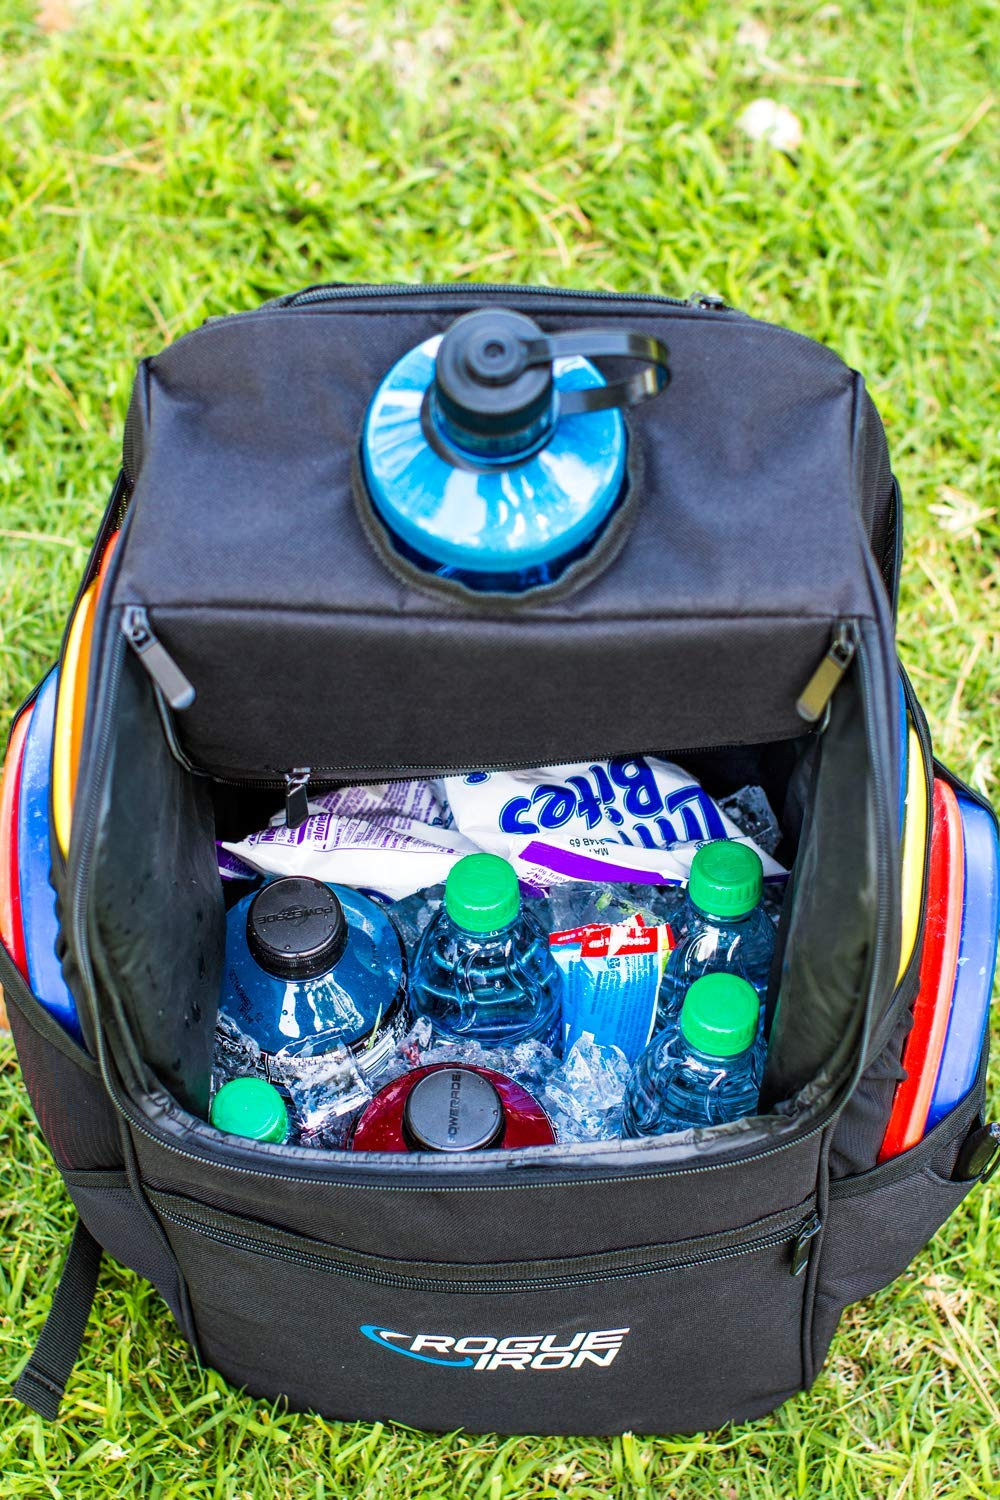 Rogue Iron Disk Golf Backpack & Cooler (Black) by Rogue Iron Sports (Image #7)